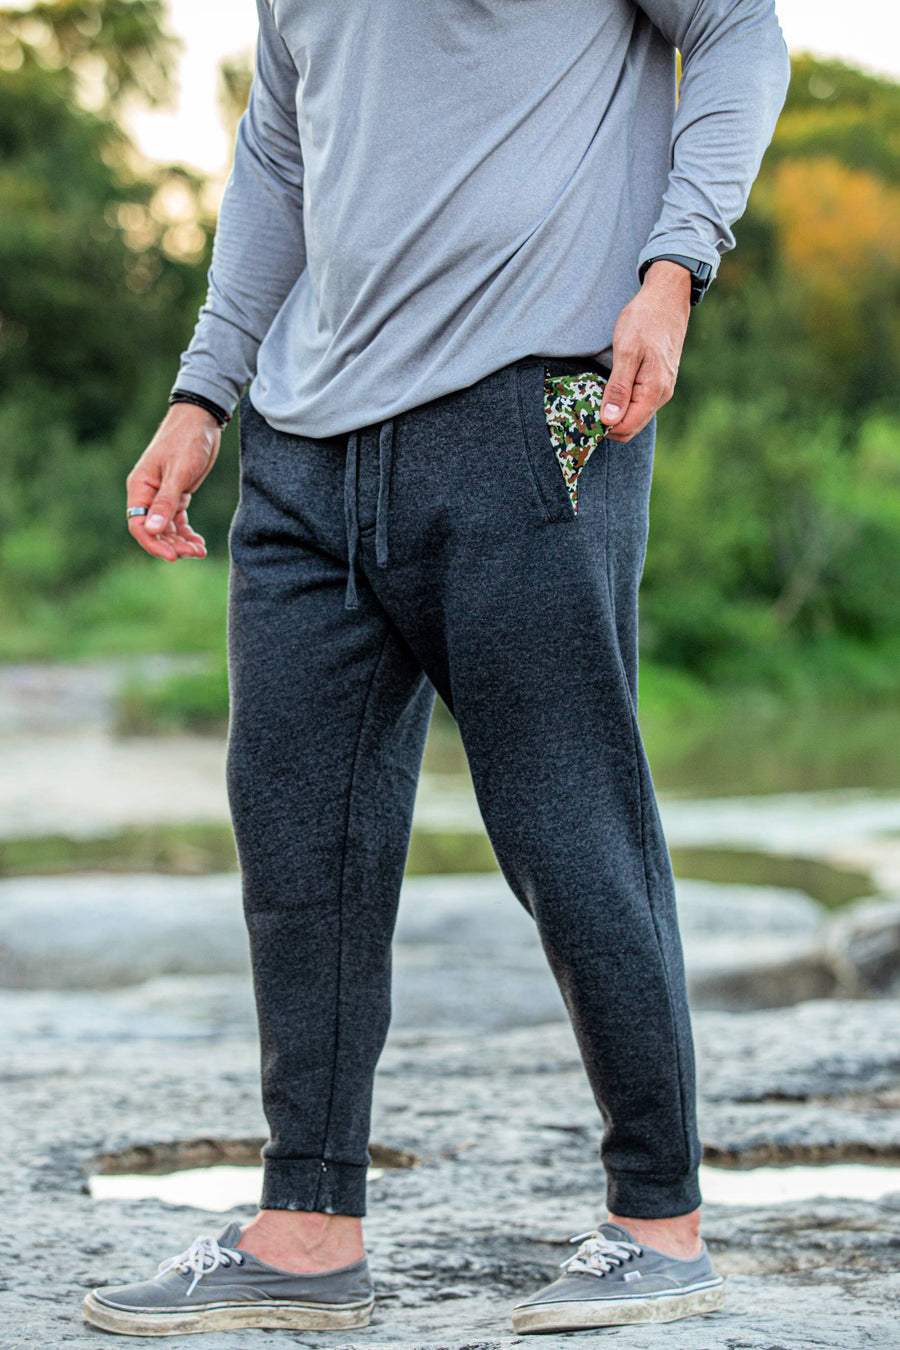 BURLEBO - Black Fleece Joggers